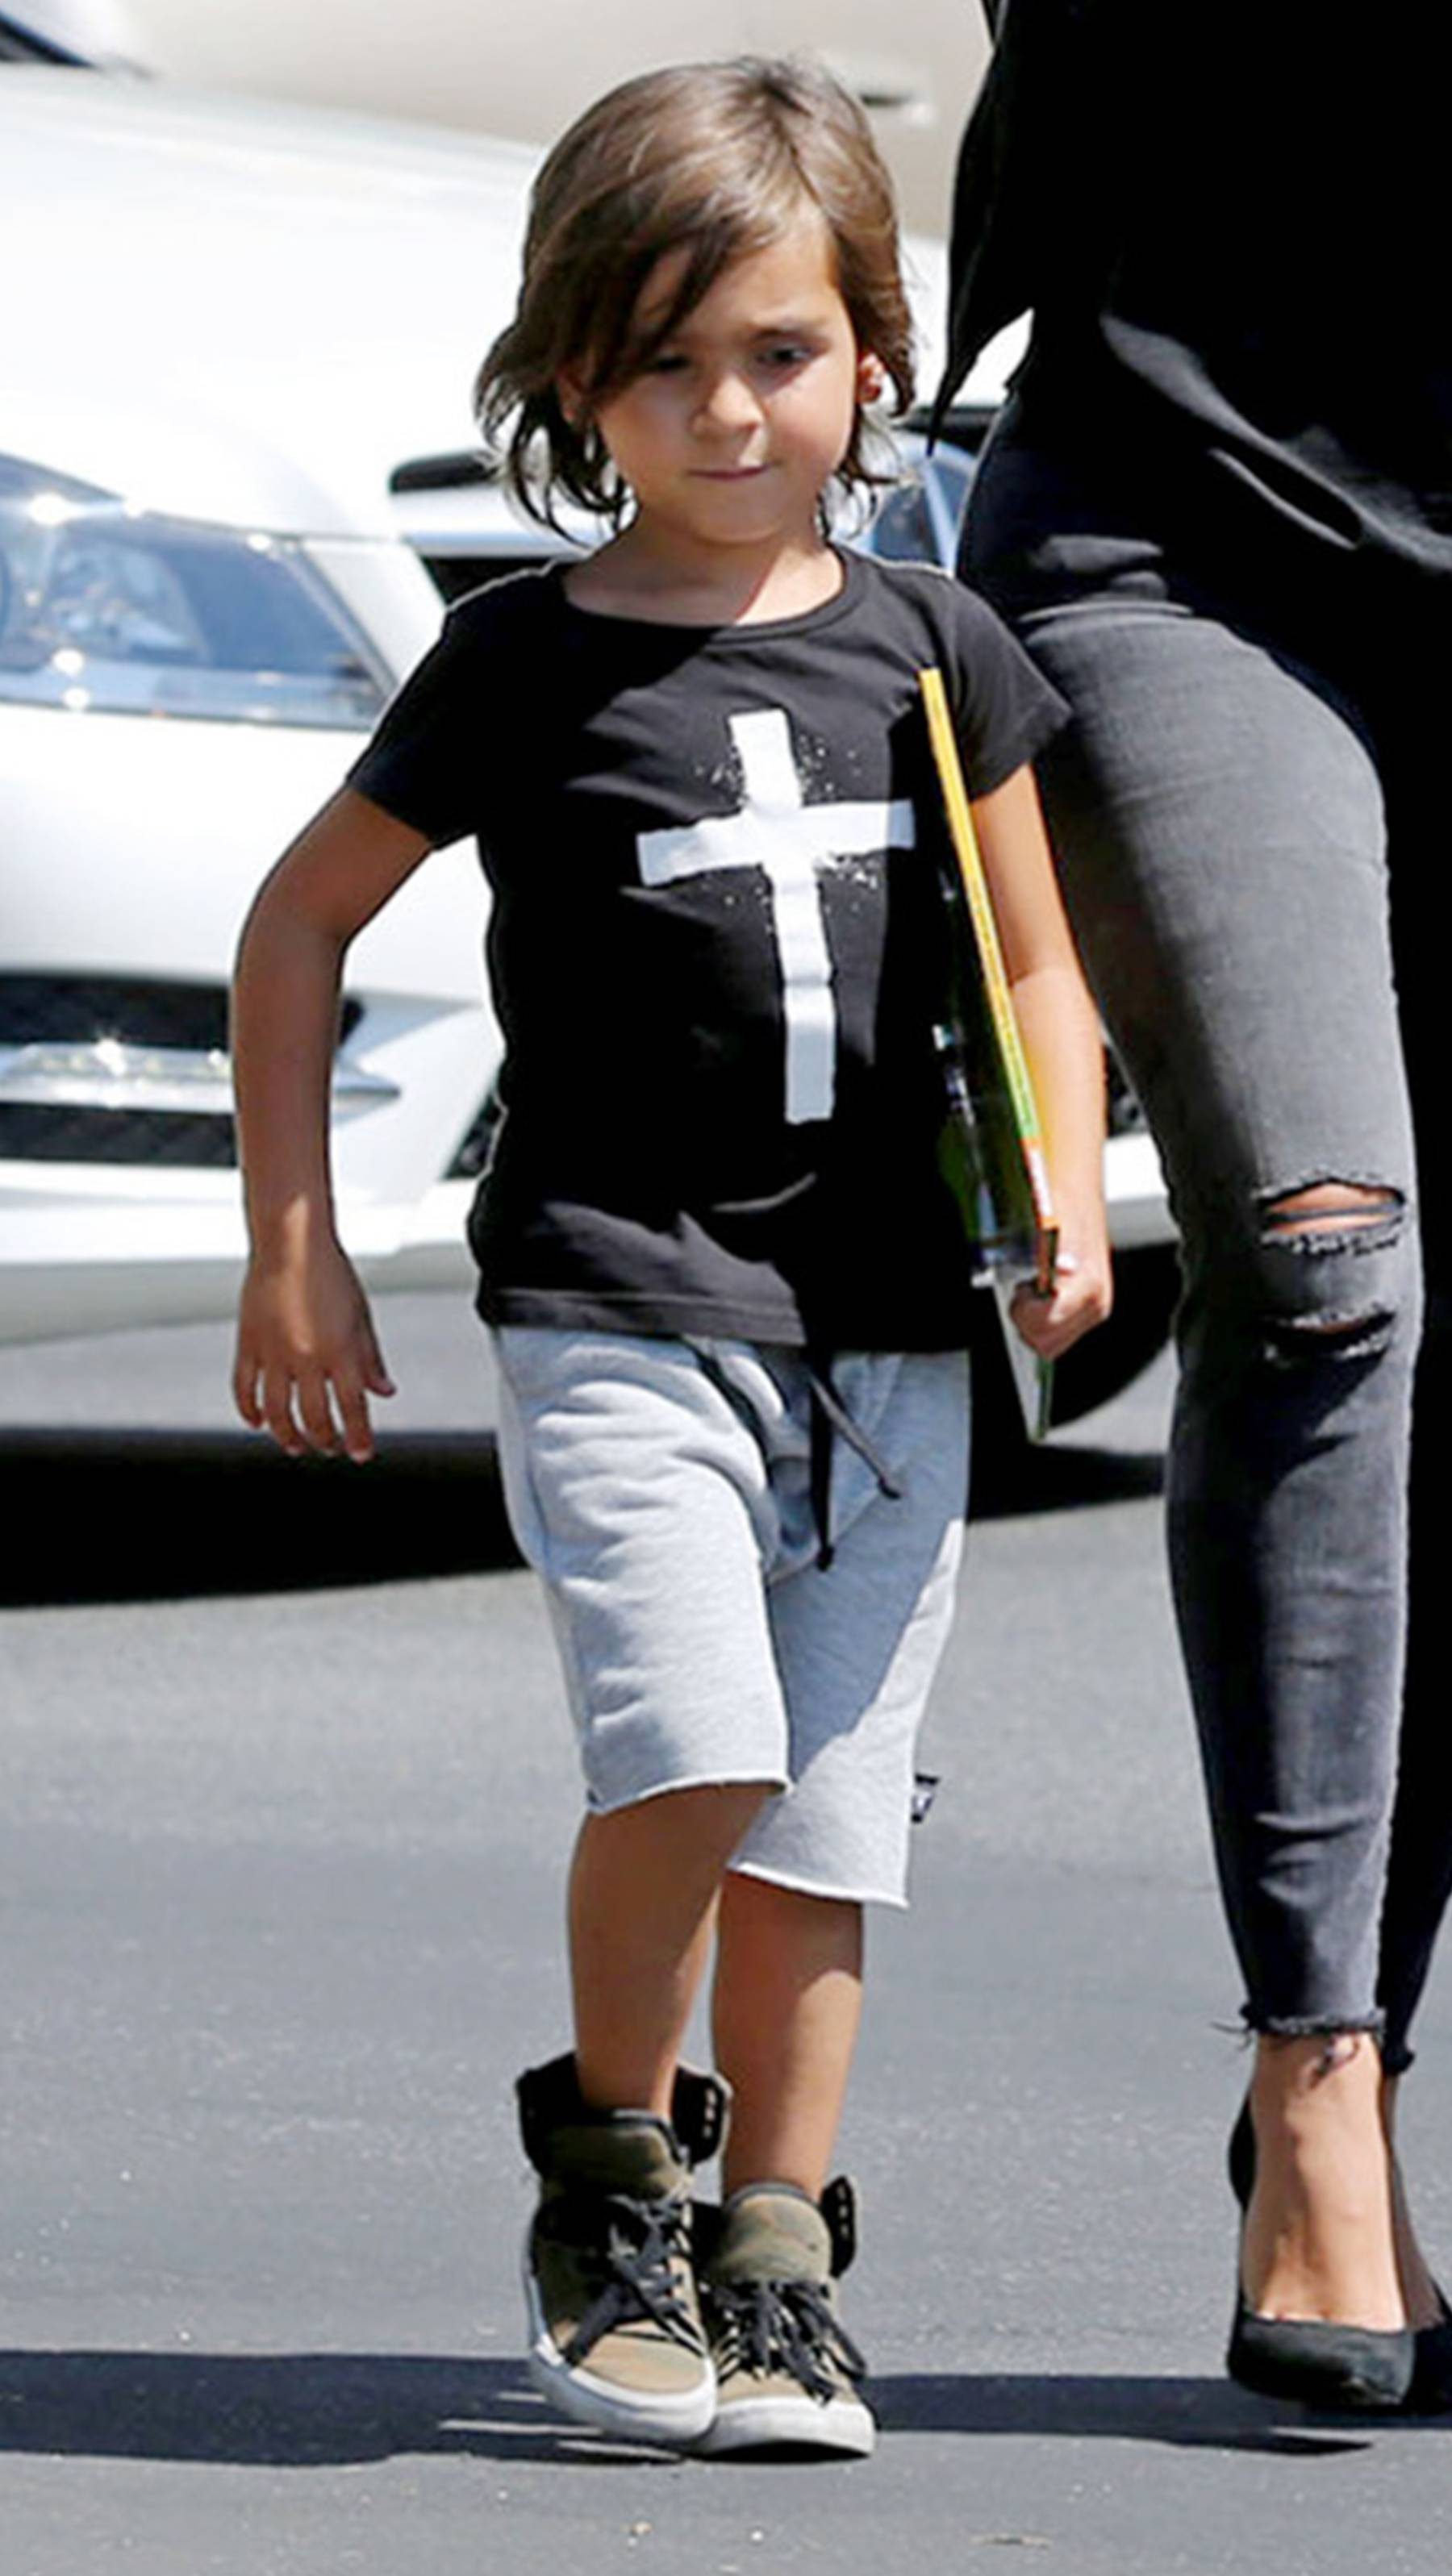 Mason Disick - Little Mason knows how to rock out!(Photo: PacificCoastNews)